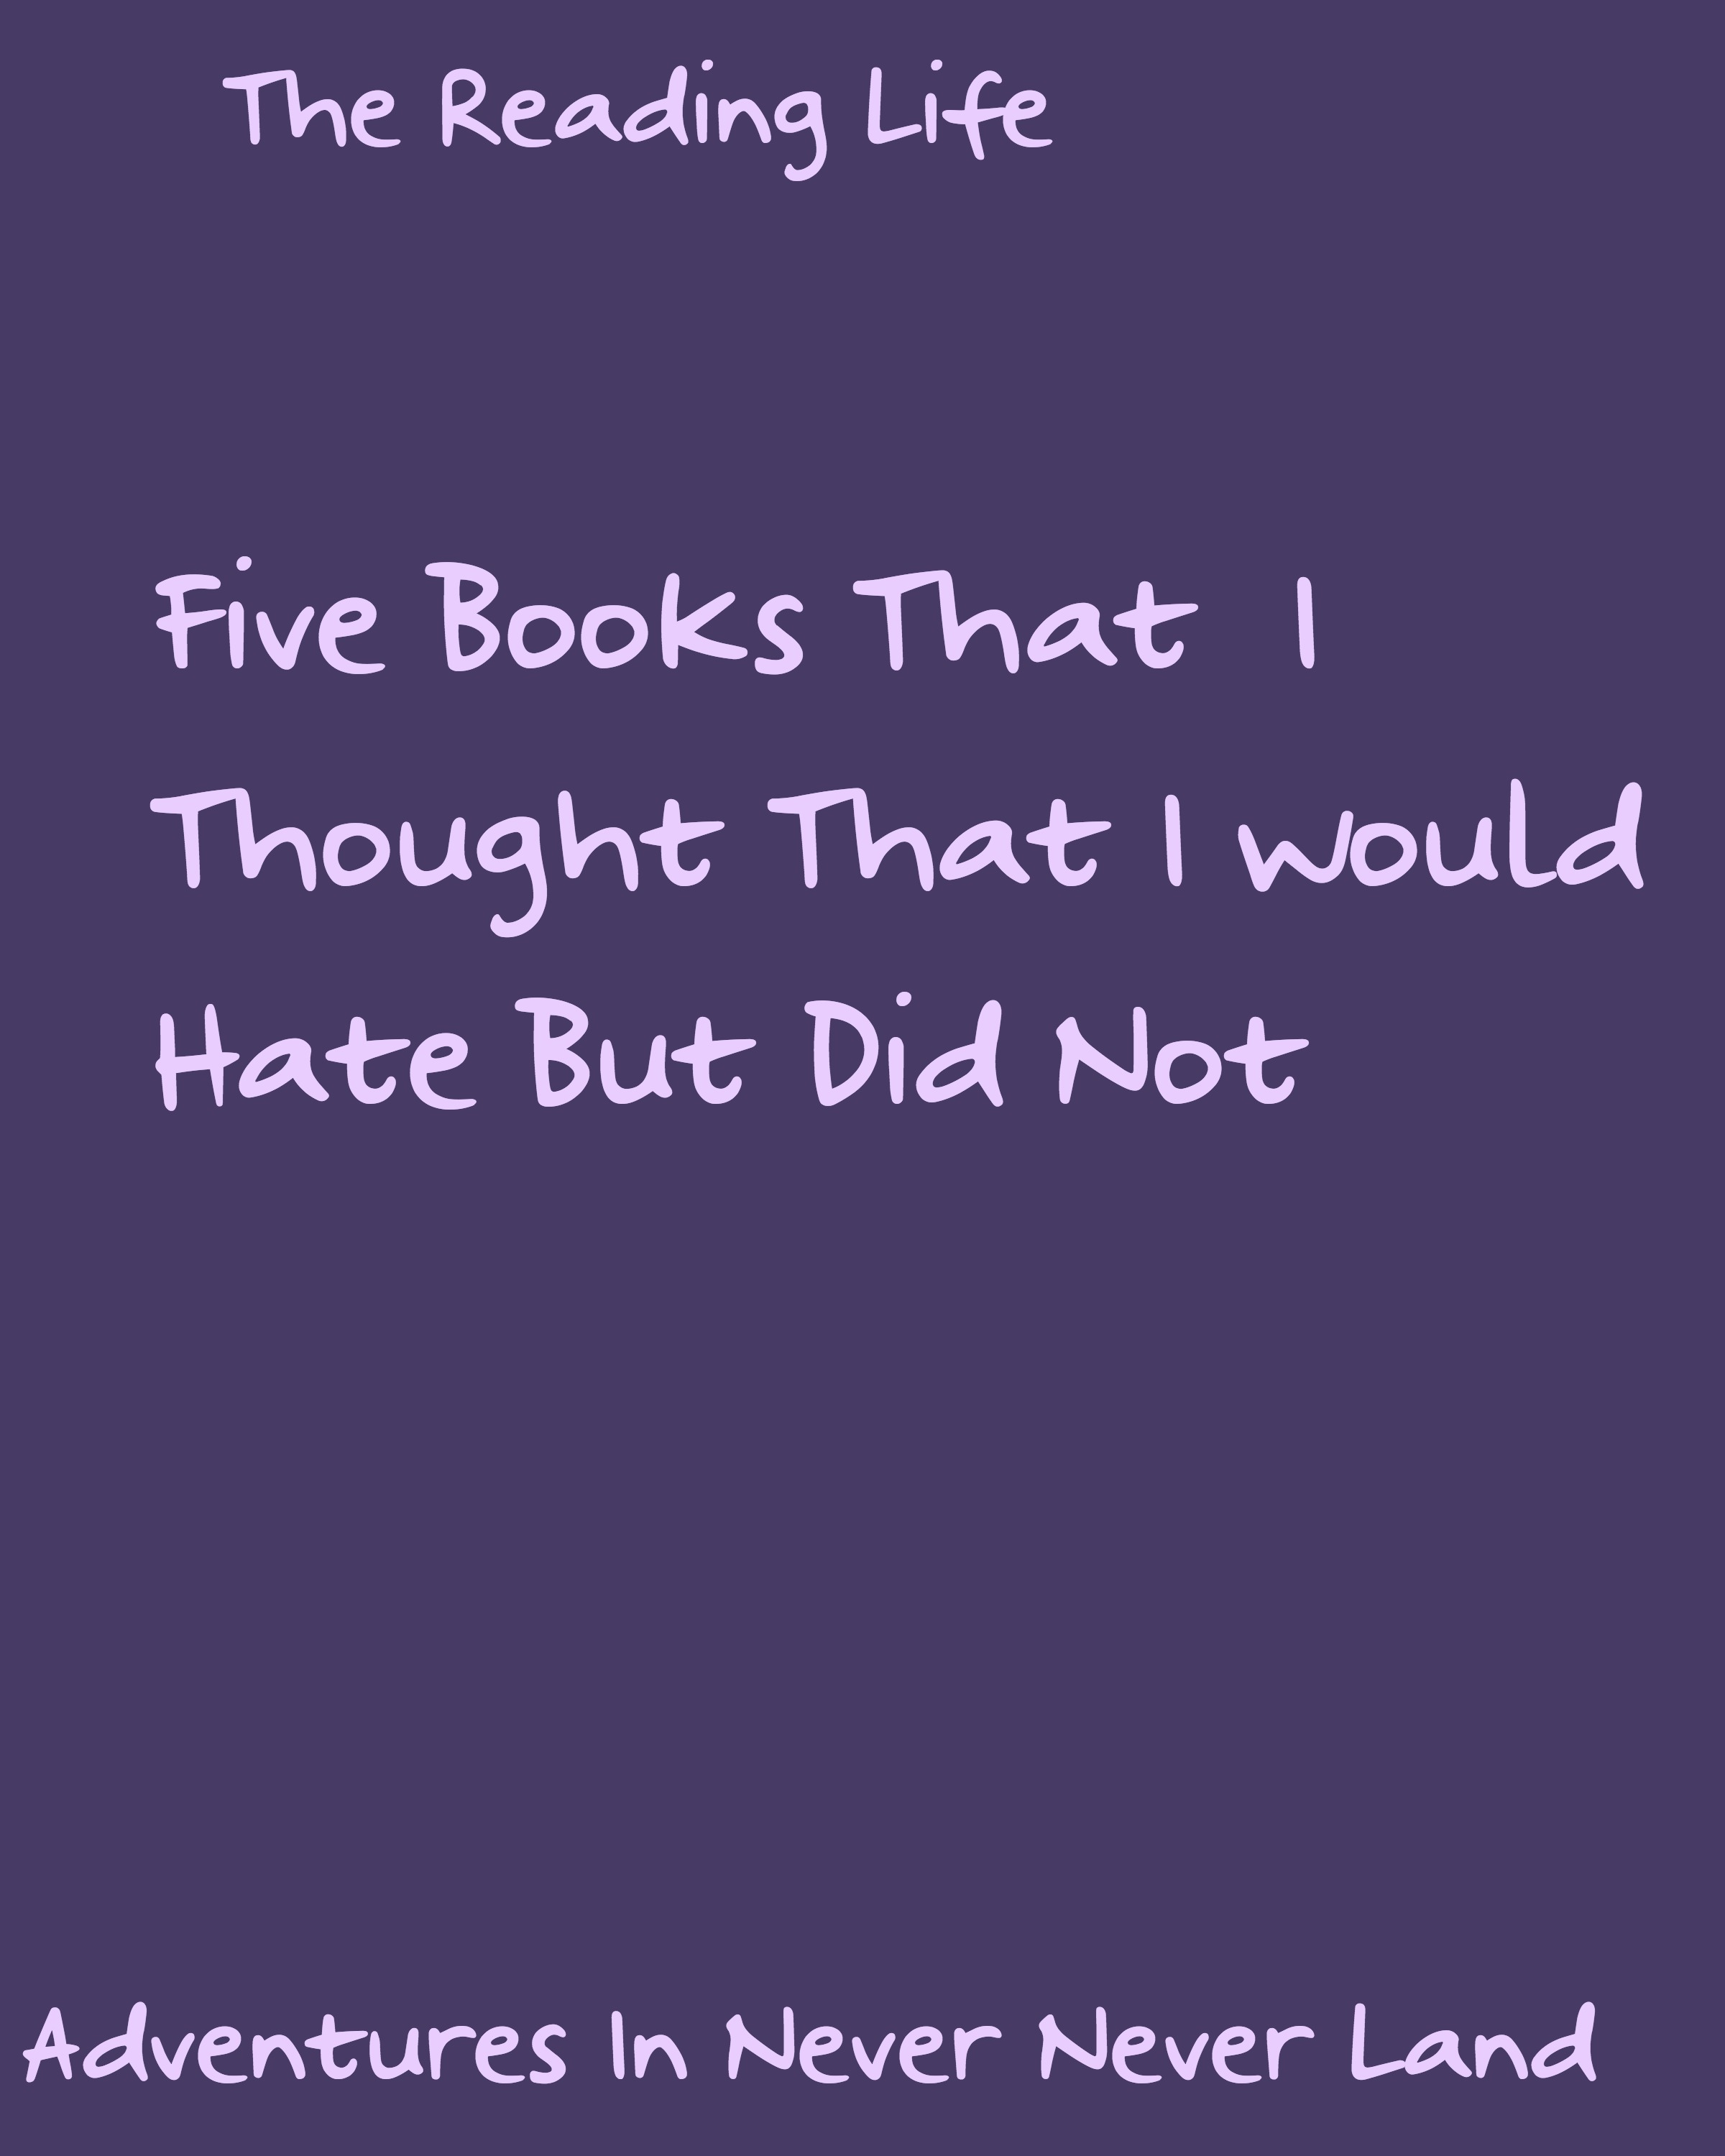 Here are 5 books That I thought I would hate but ended up loving them. Click Through to see what they are.